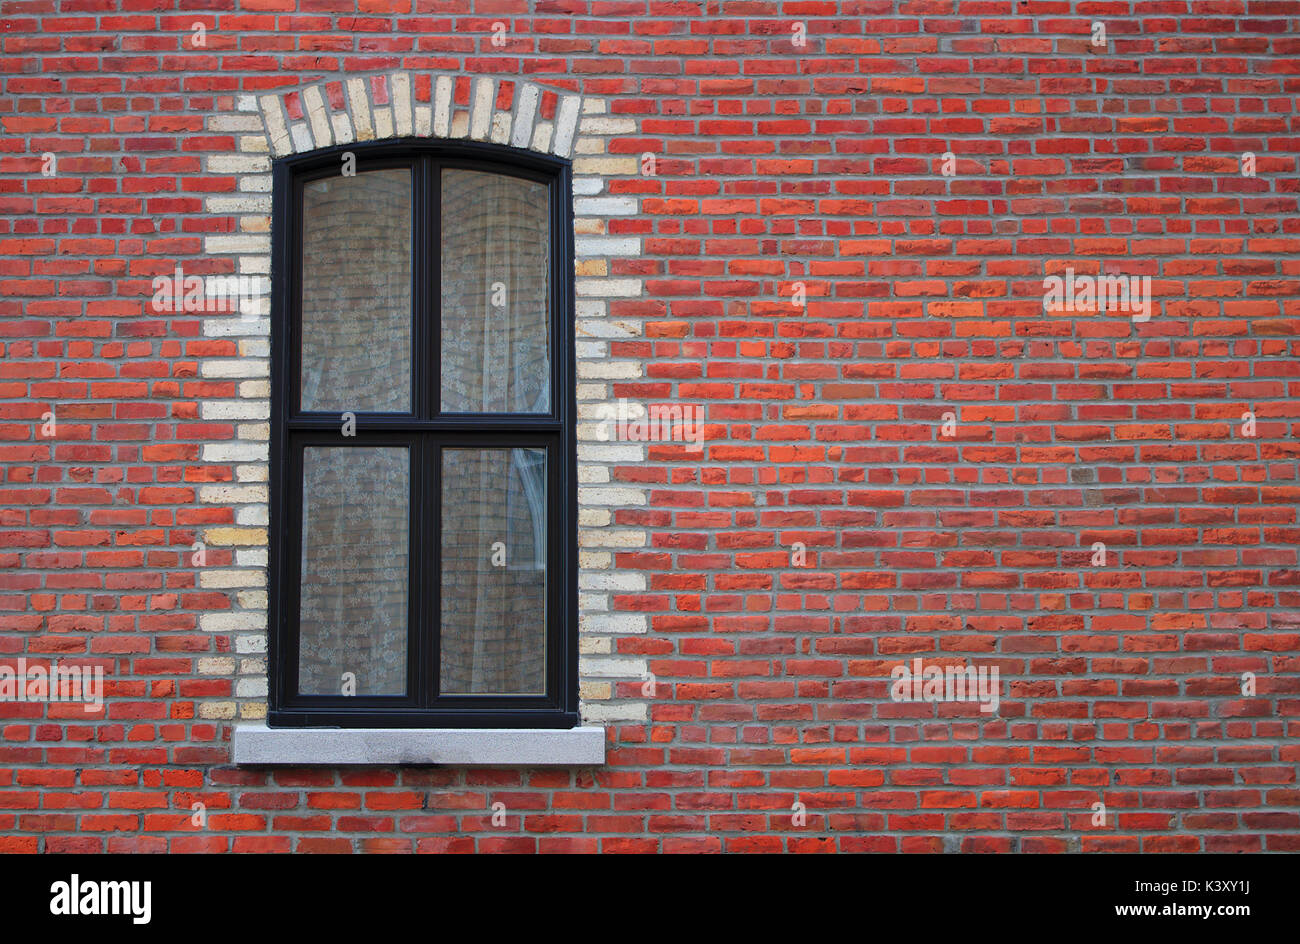 window wall residential window vintage white curtain red brick old architecture Stock Photo